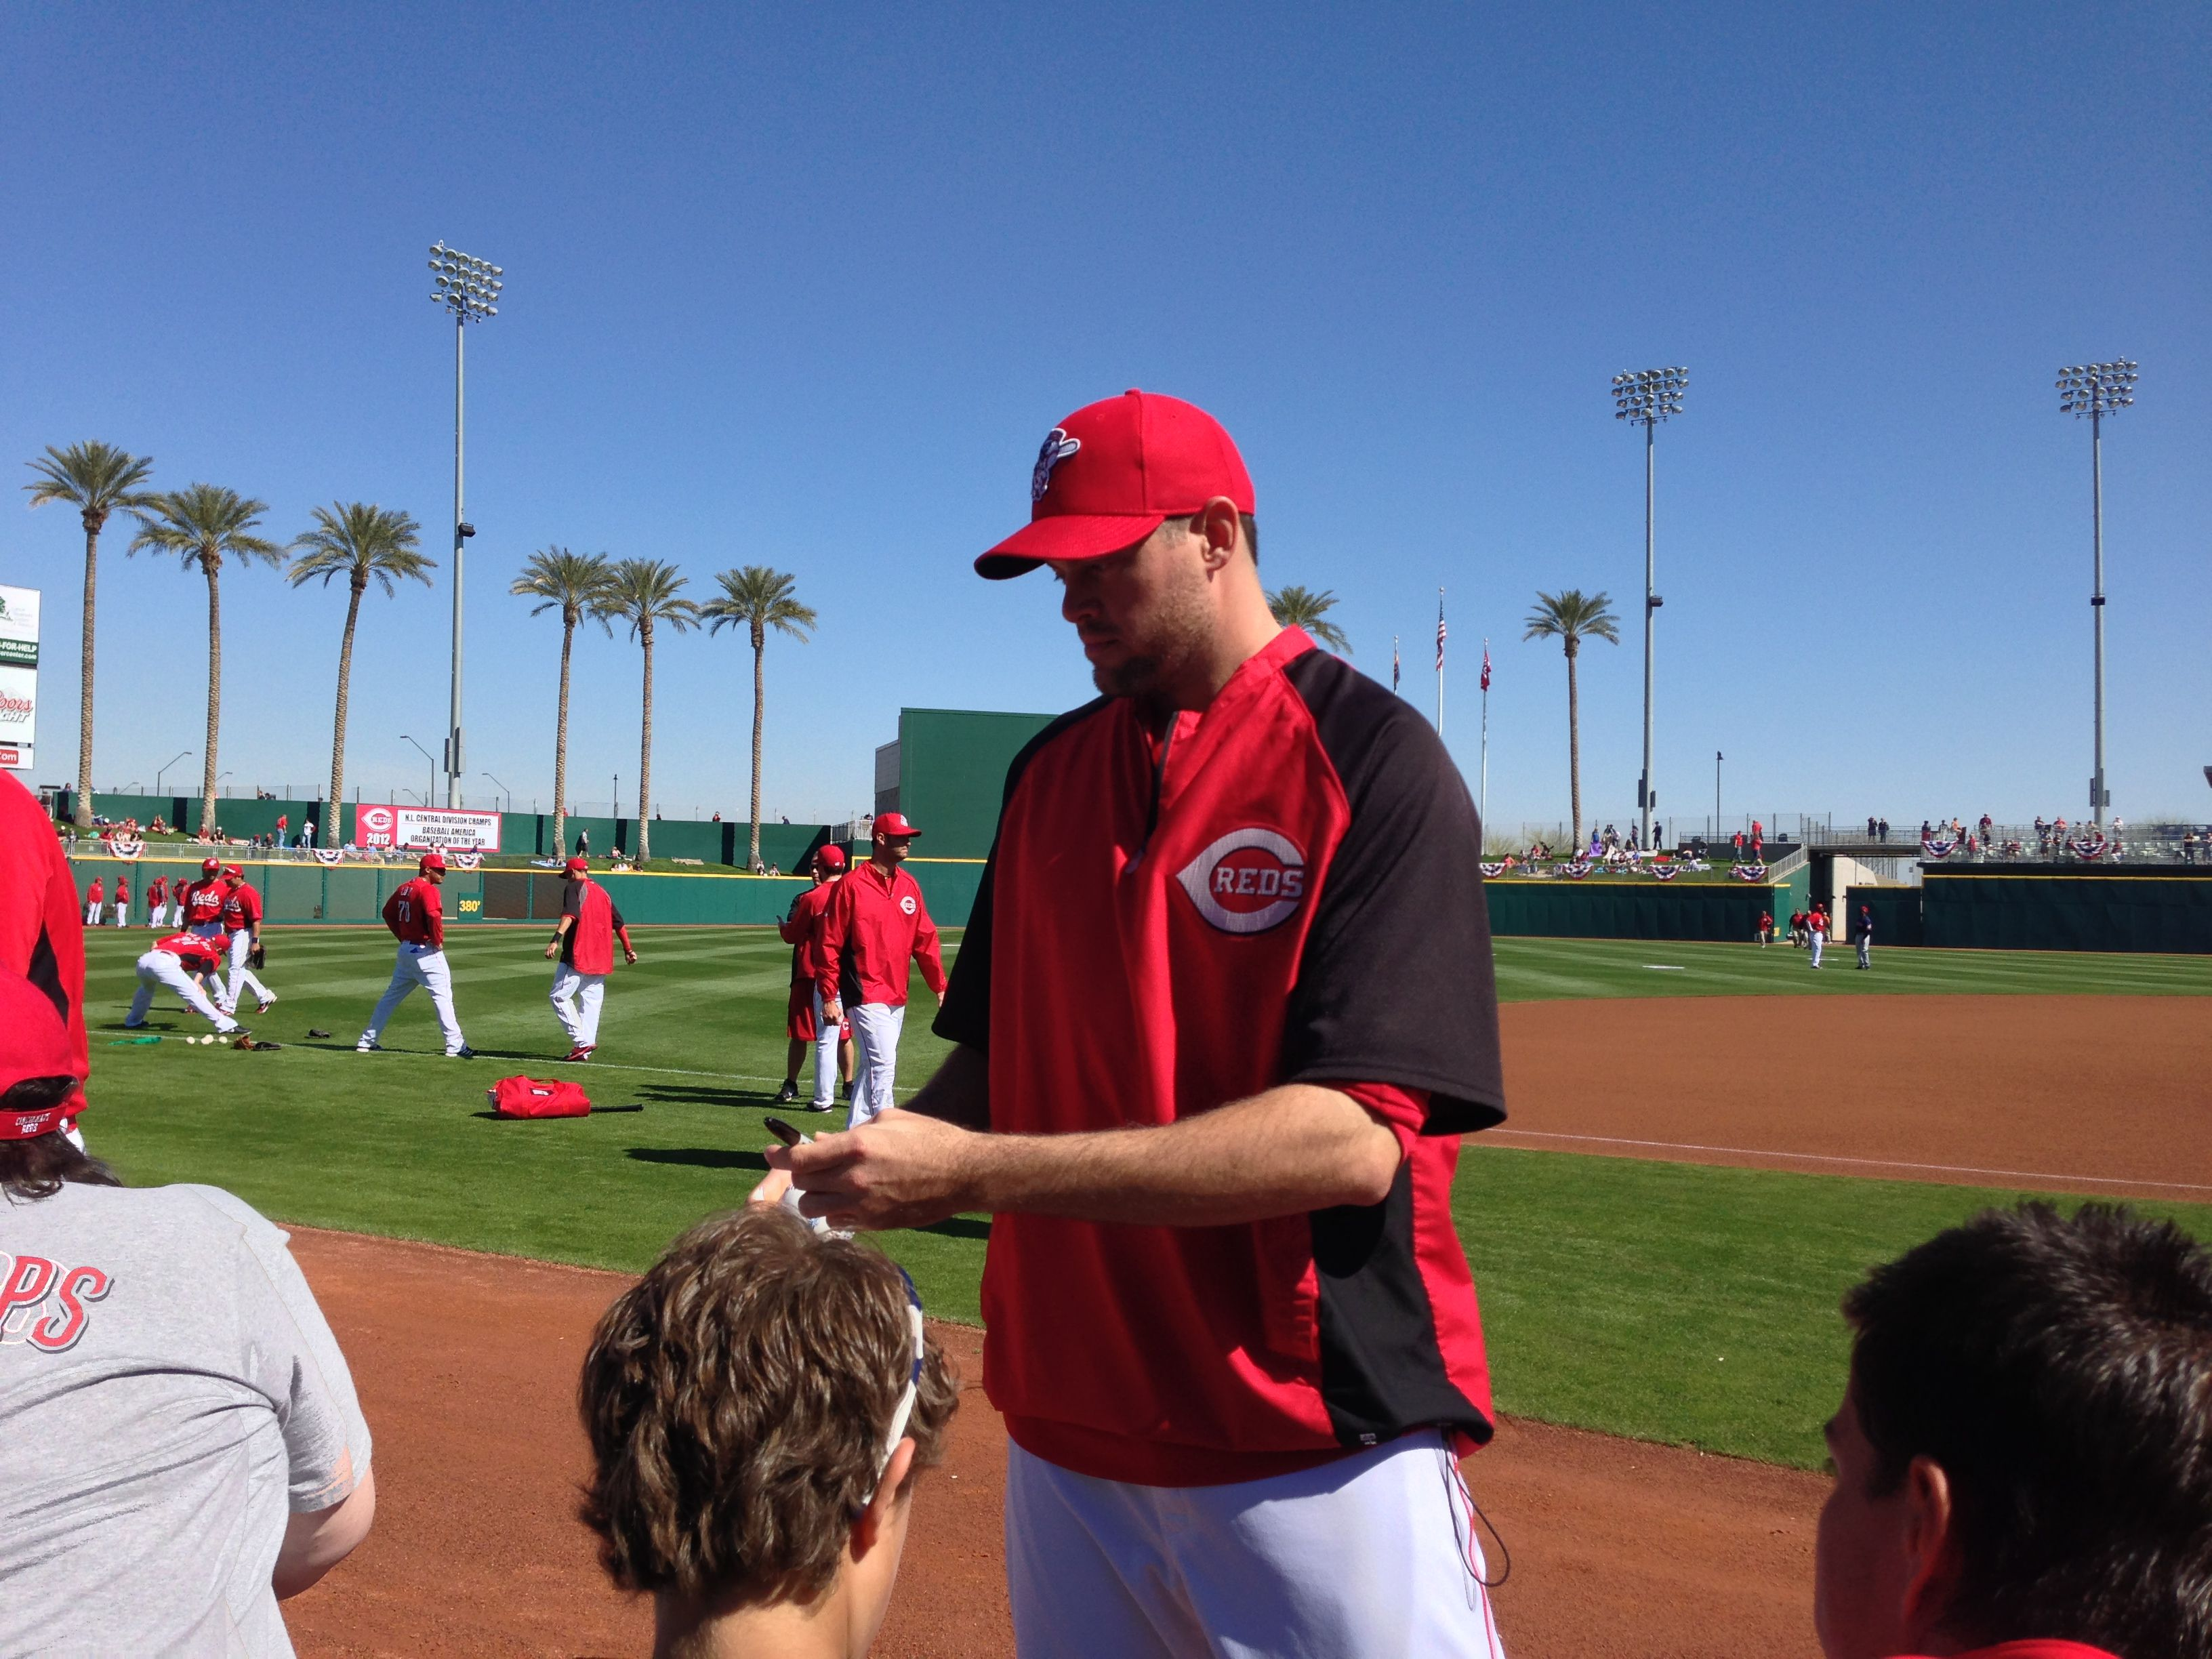 Sean Marshall Reds spring training, Cincinnati reds